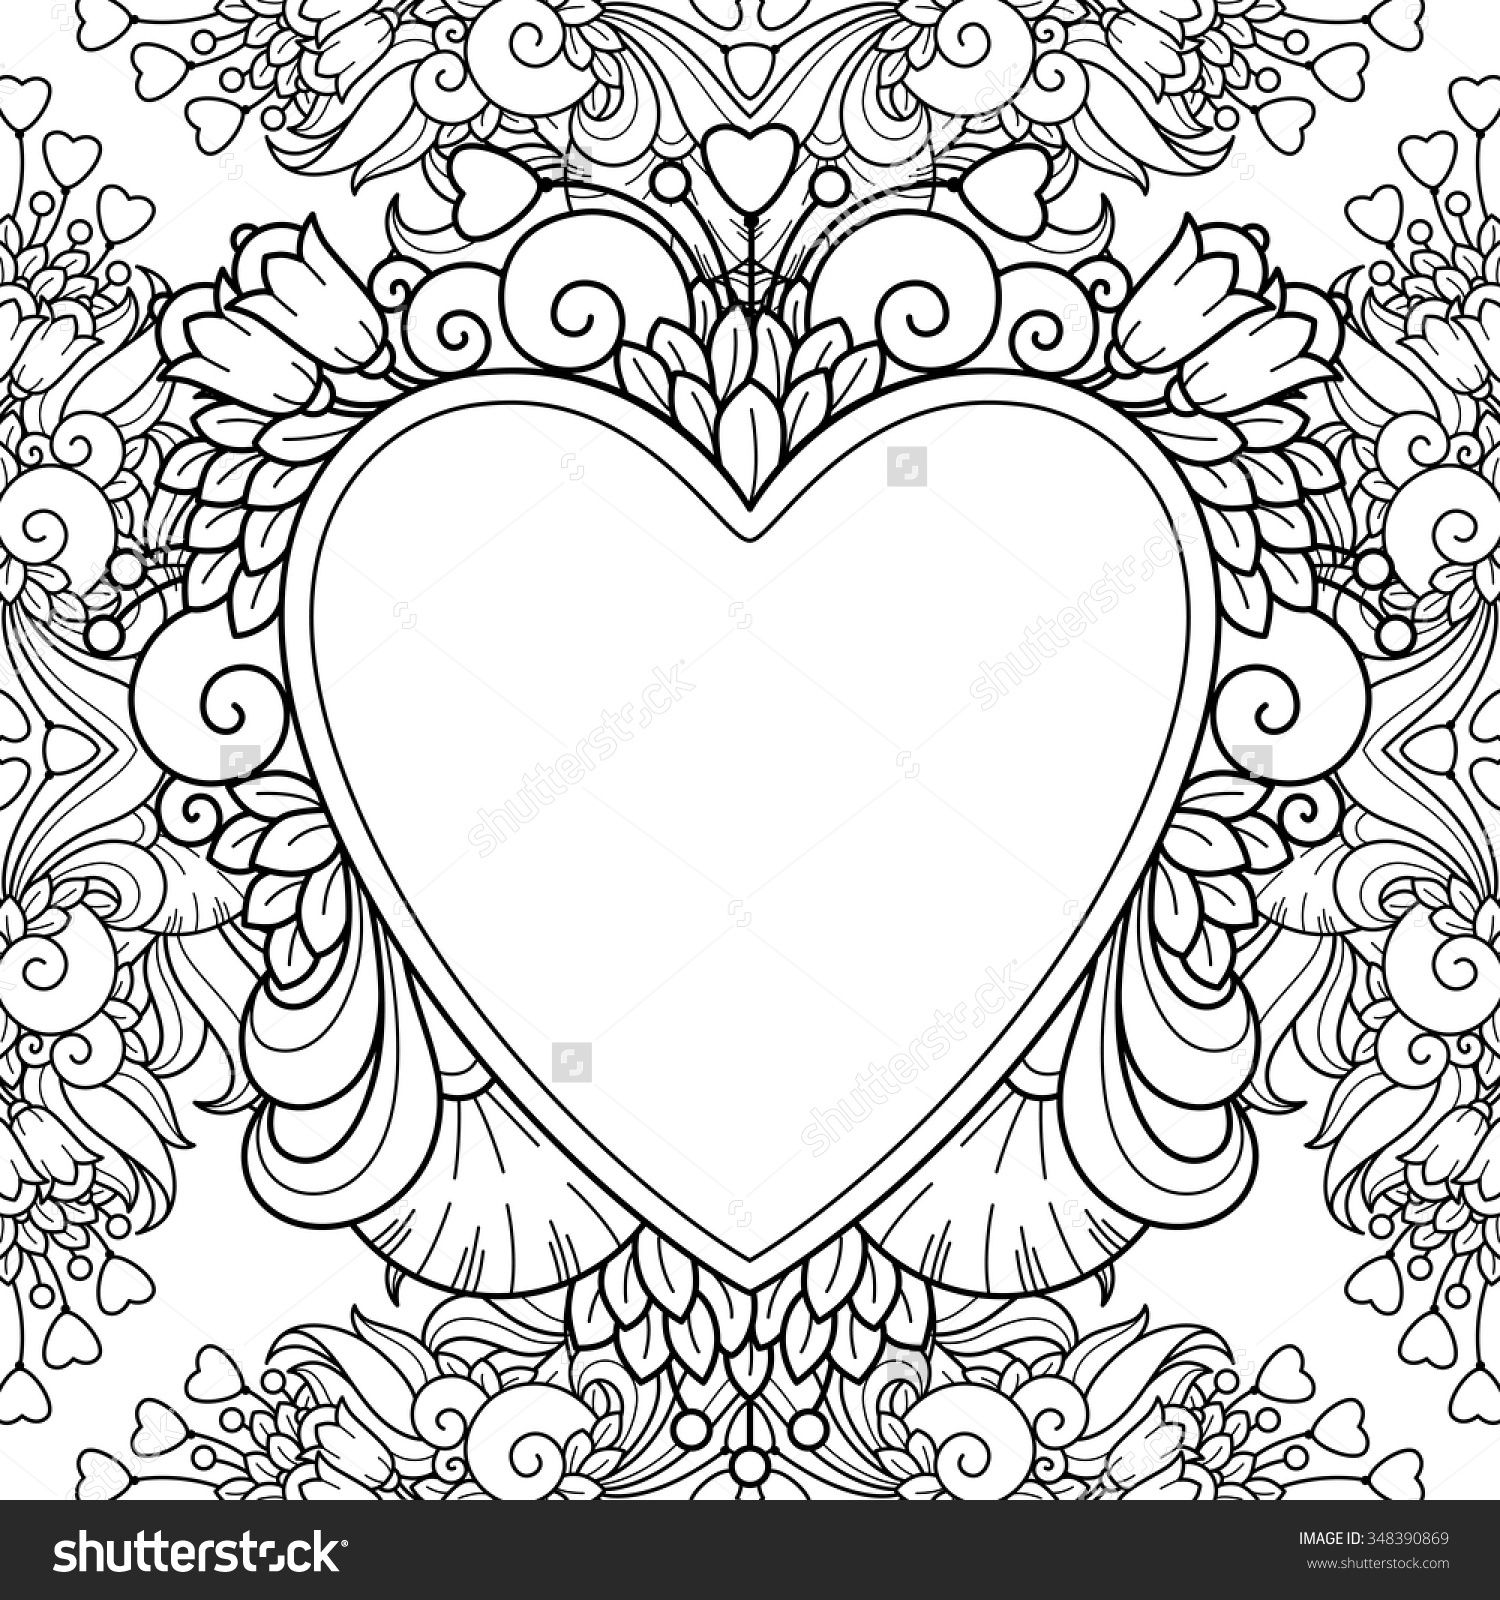 Decorative Love Frame With Hearts Flowers Ornate Elements In Doodle Style Floral Ornate Decorative Love Coloring Pages Love Frames Pattern Coloring Pages